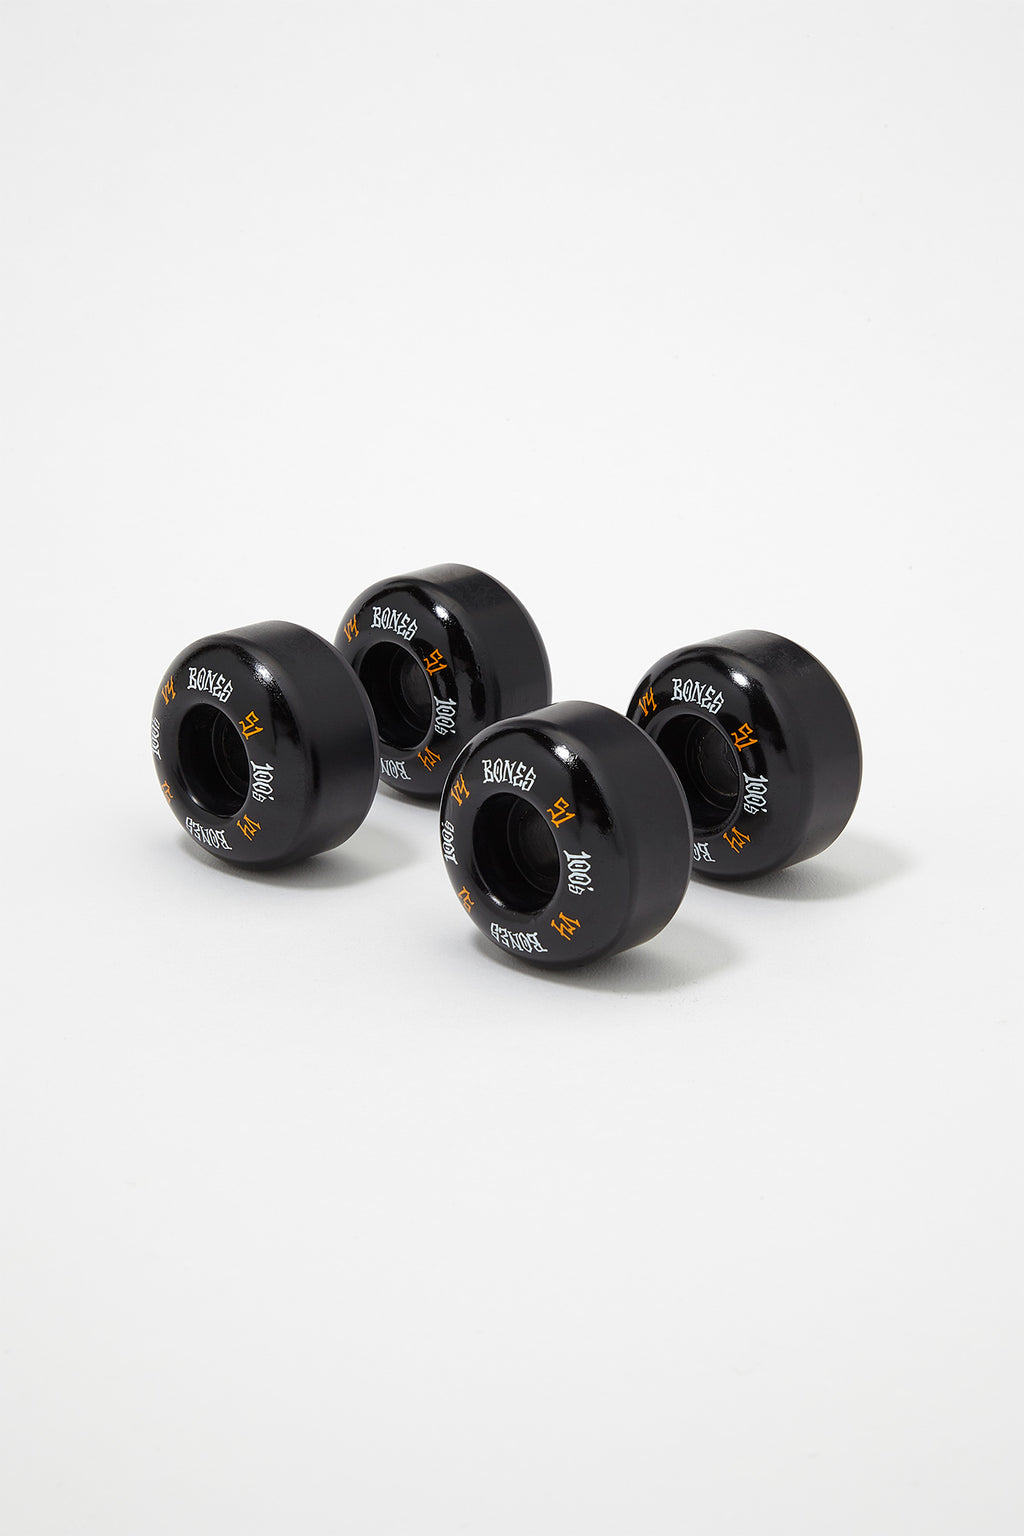 Bones Wheels 100's V4 4-Pack Skateboard Wheels